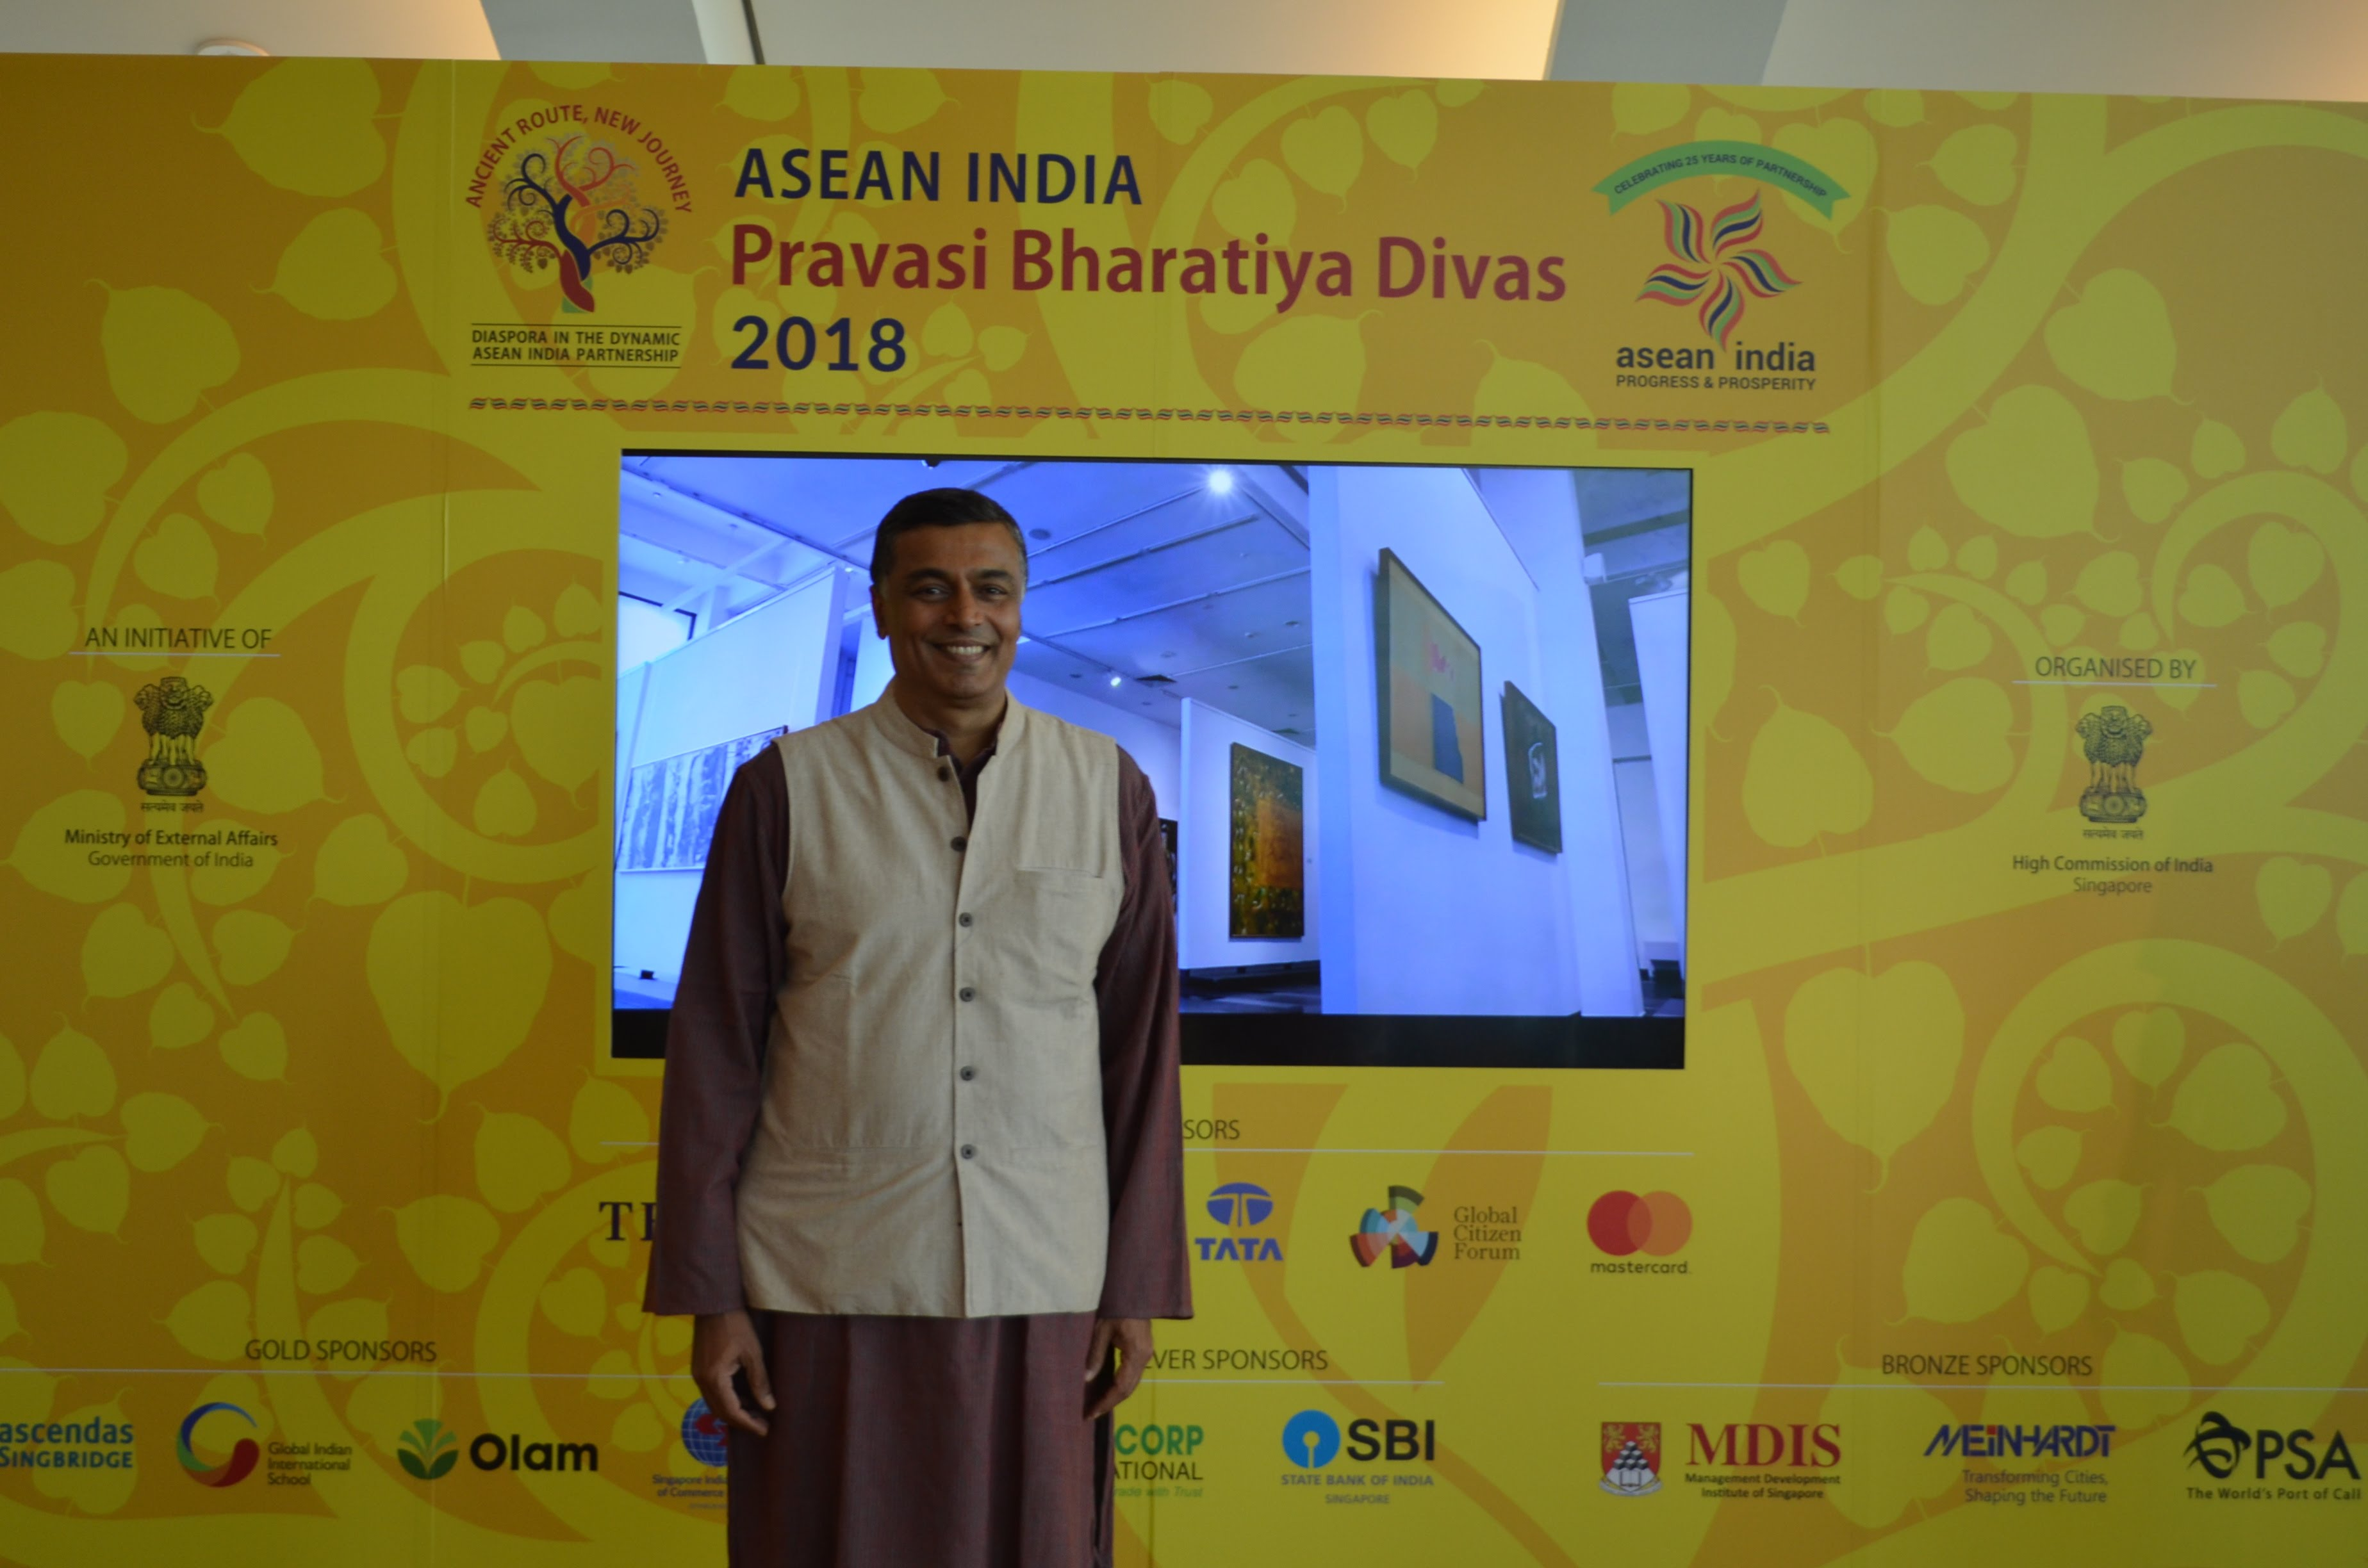 Vijay Bhat was part of the Yoga and Wellness Zone at the recently-concluded Pravasi Bharatiya Divas in Singapore